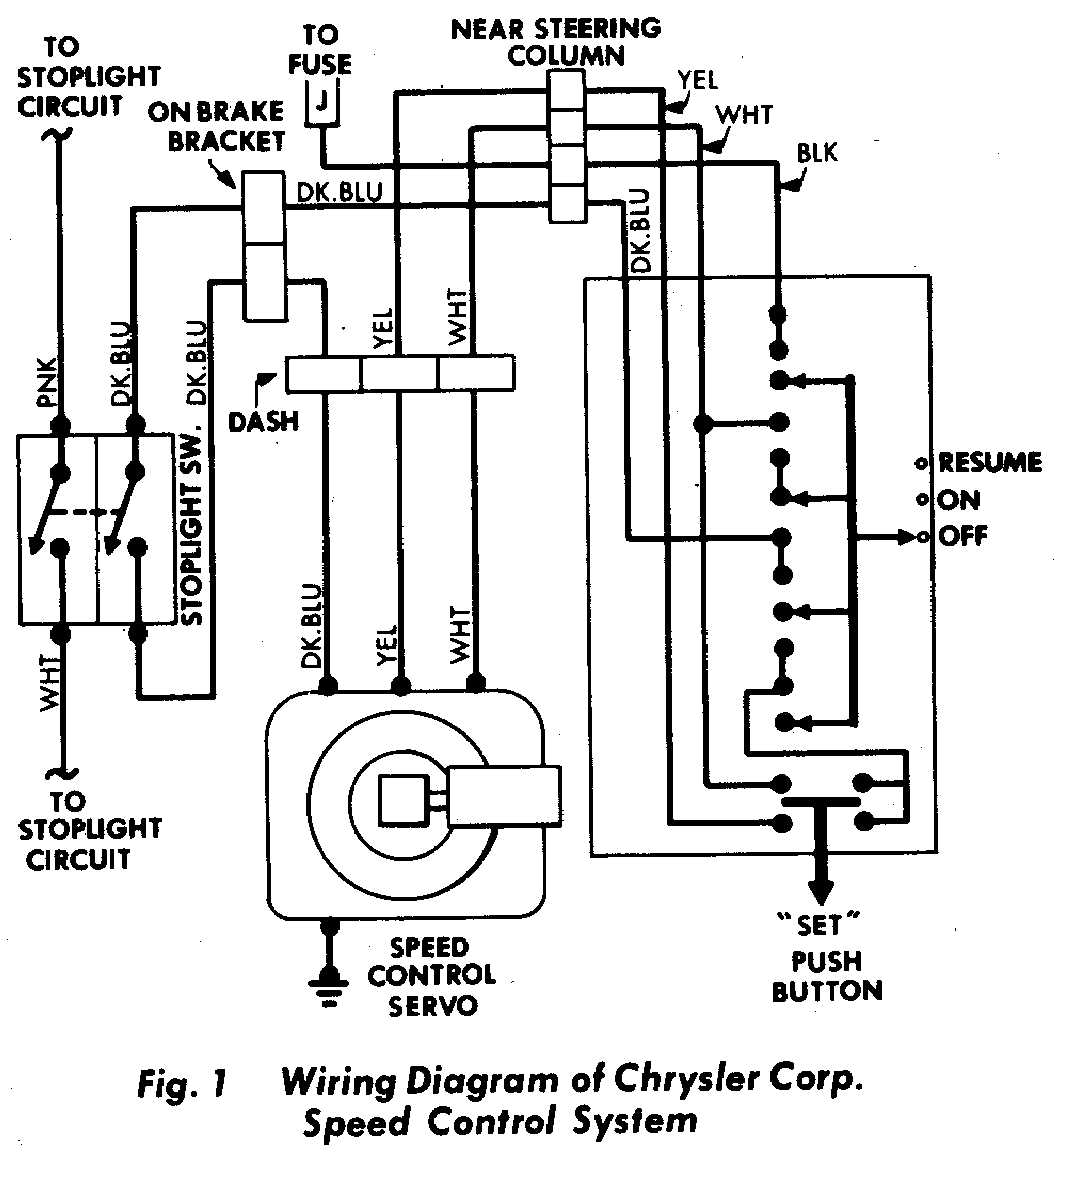 Remarkable Gmc Truck Wiring Diagram Images Best Image. Gmc